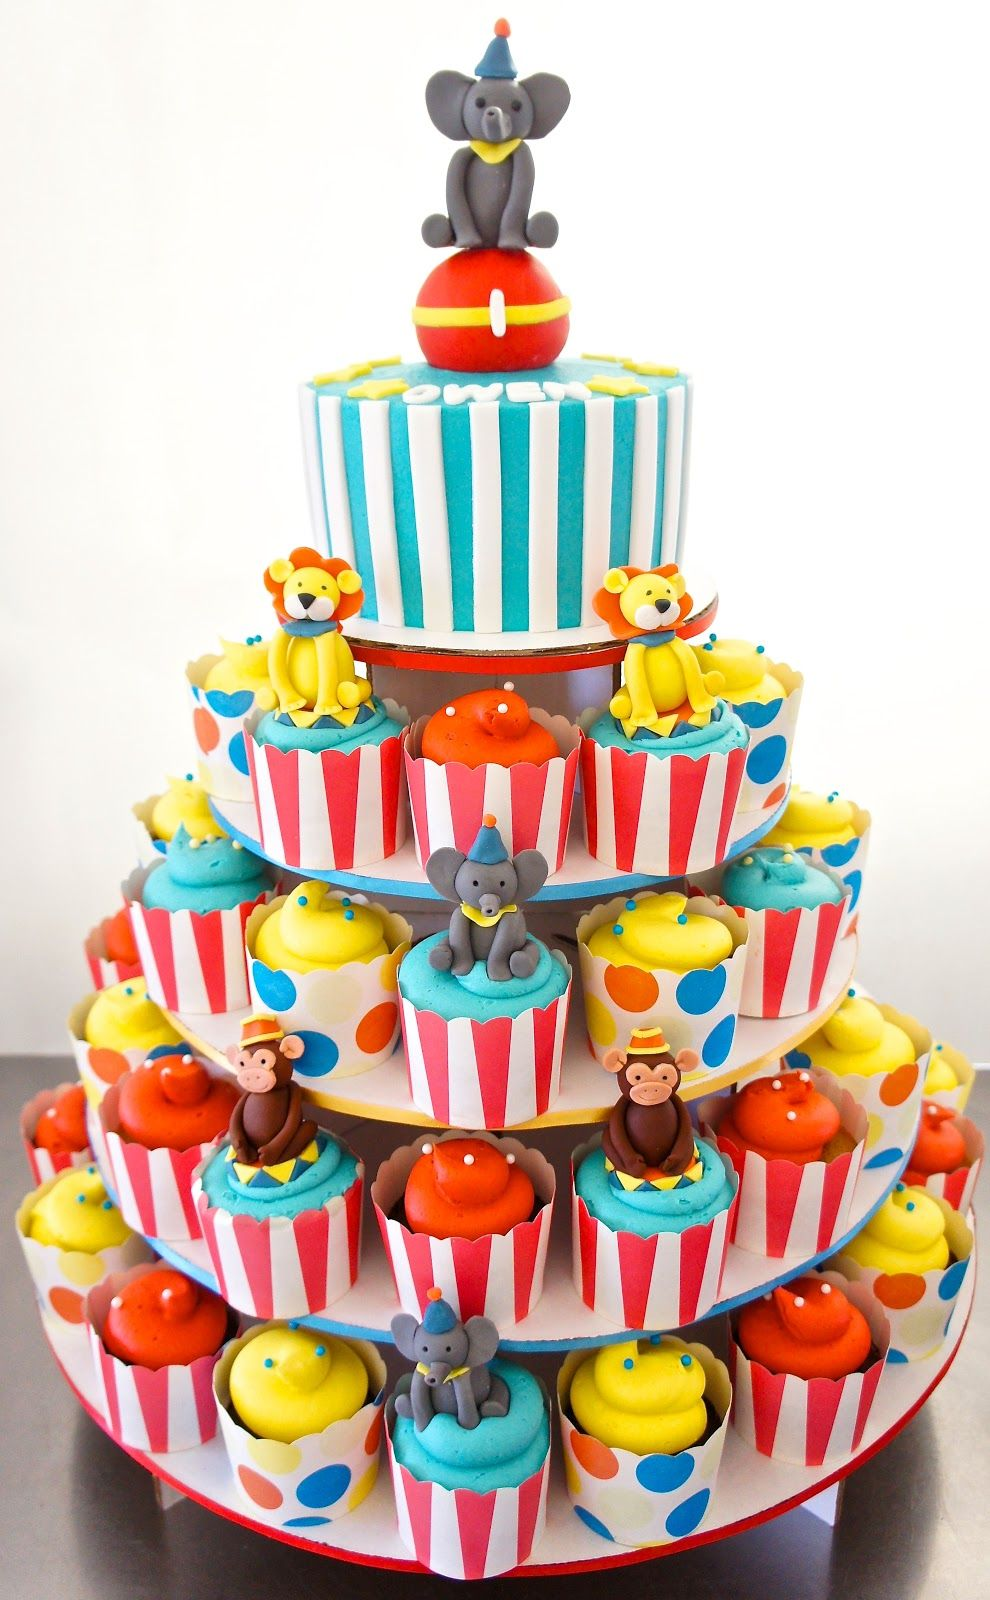 Circus Cake and Circus Cupcakes by Half Baked Co Birthday cakes